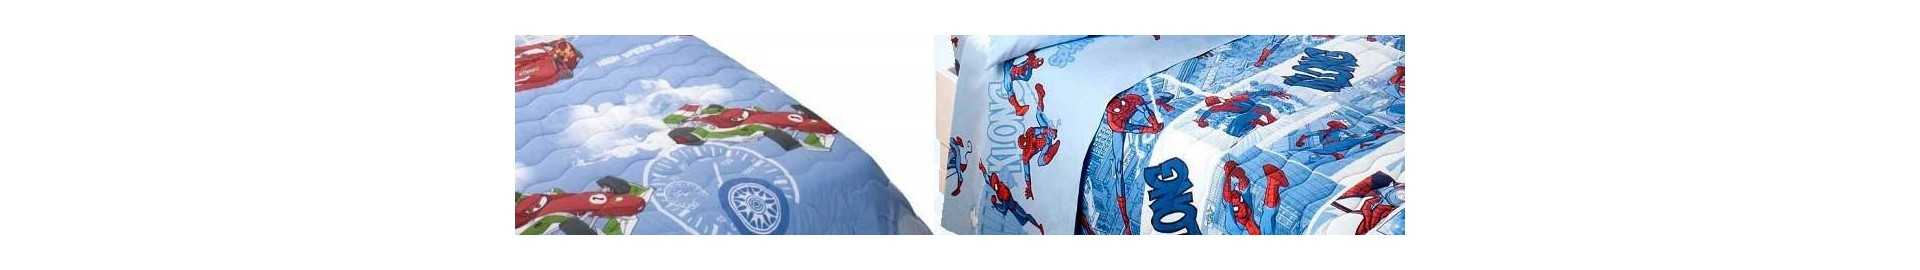 Bedcovers double bed